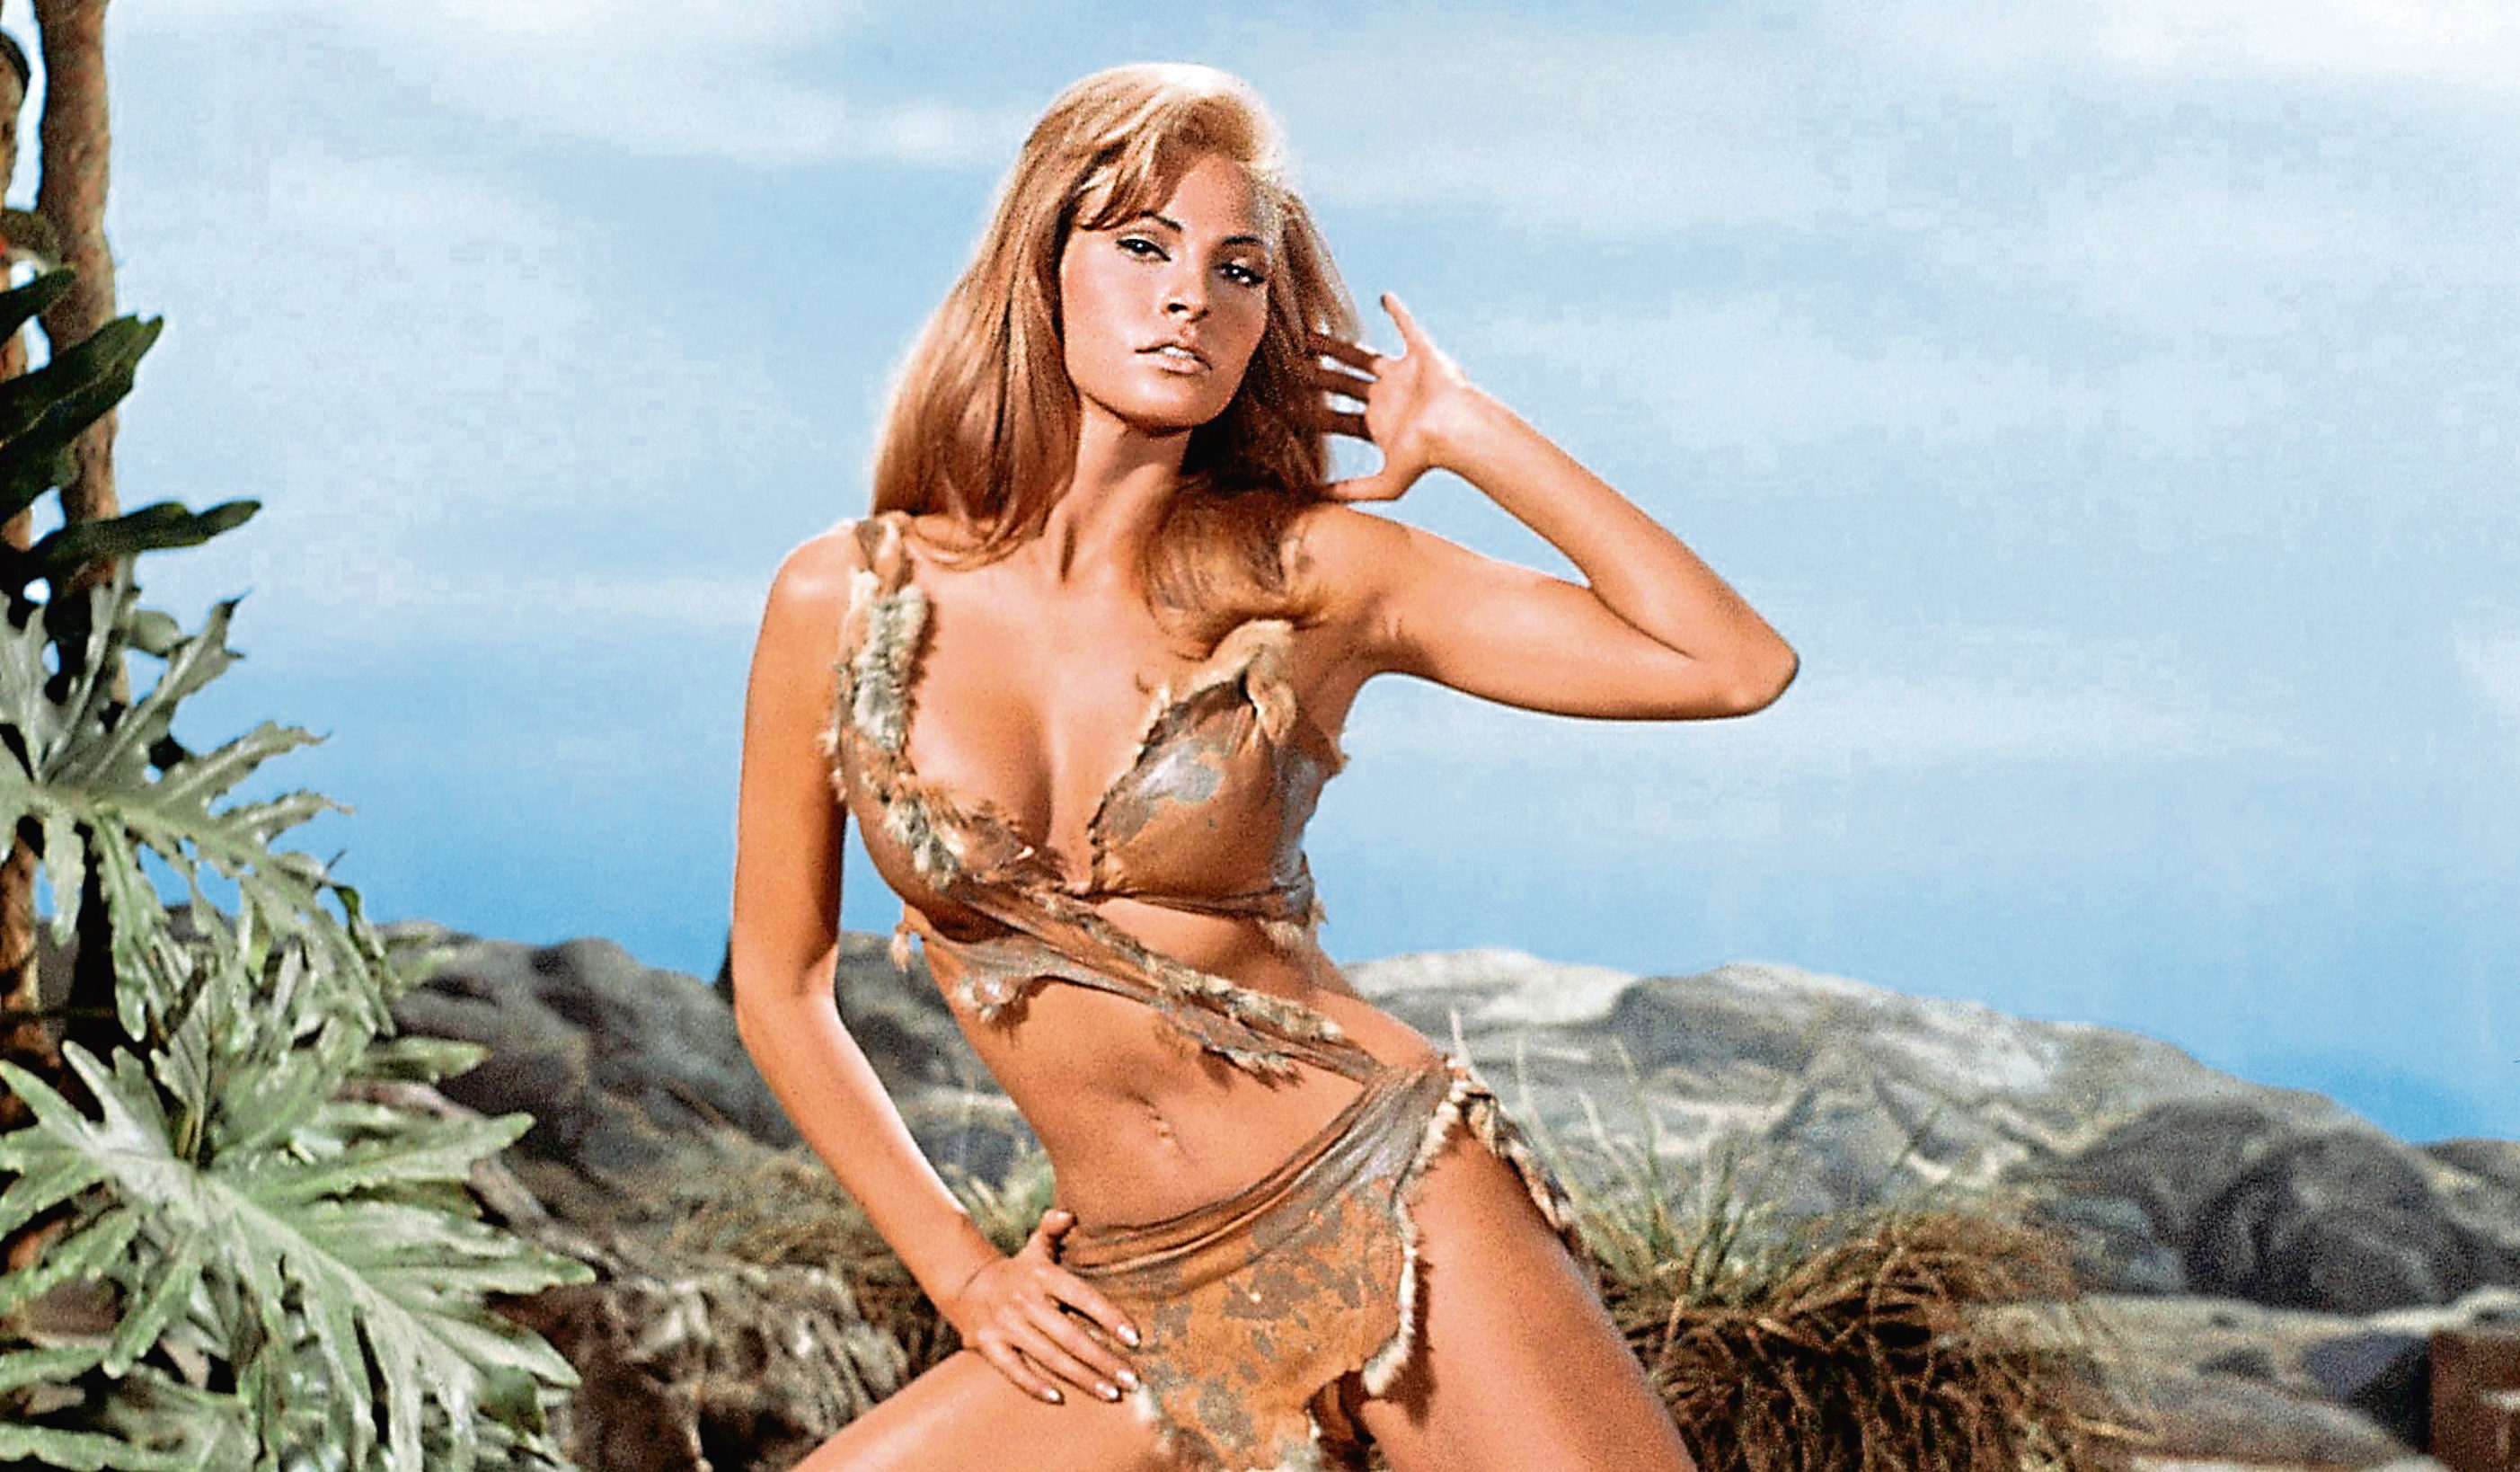 Raquel Welch in One Million Years BC, 1966  (Allstar/STUDIOCANAL/20TH CENTURY FOX